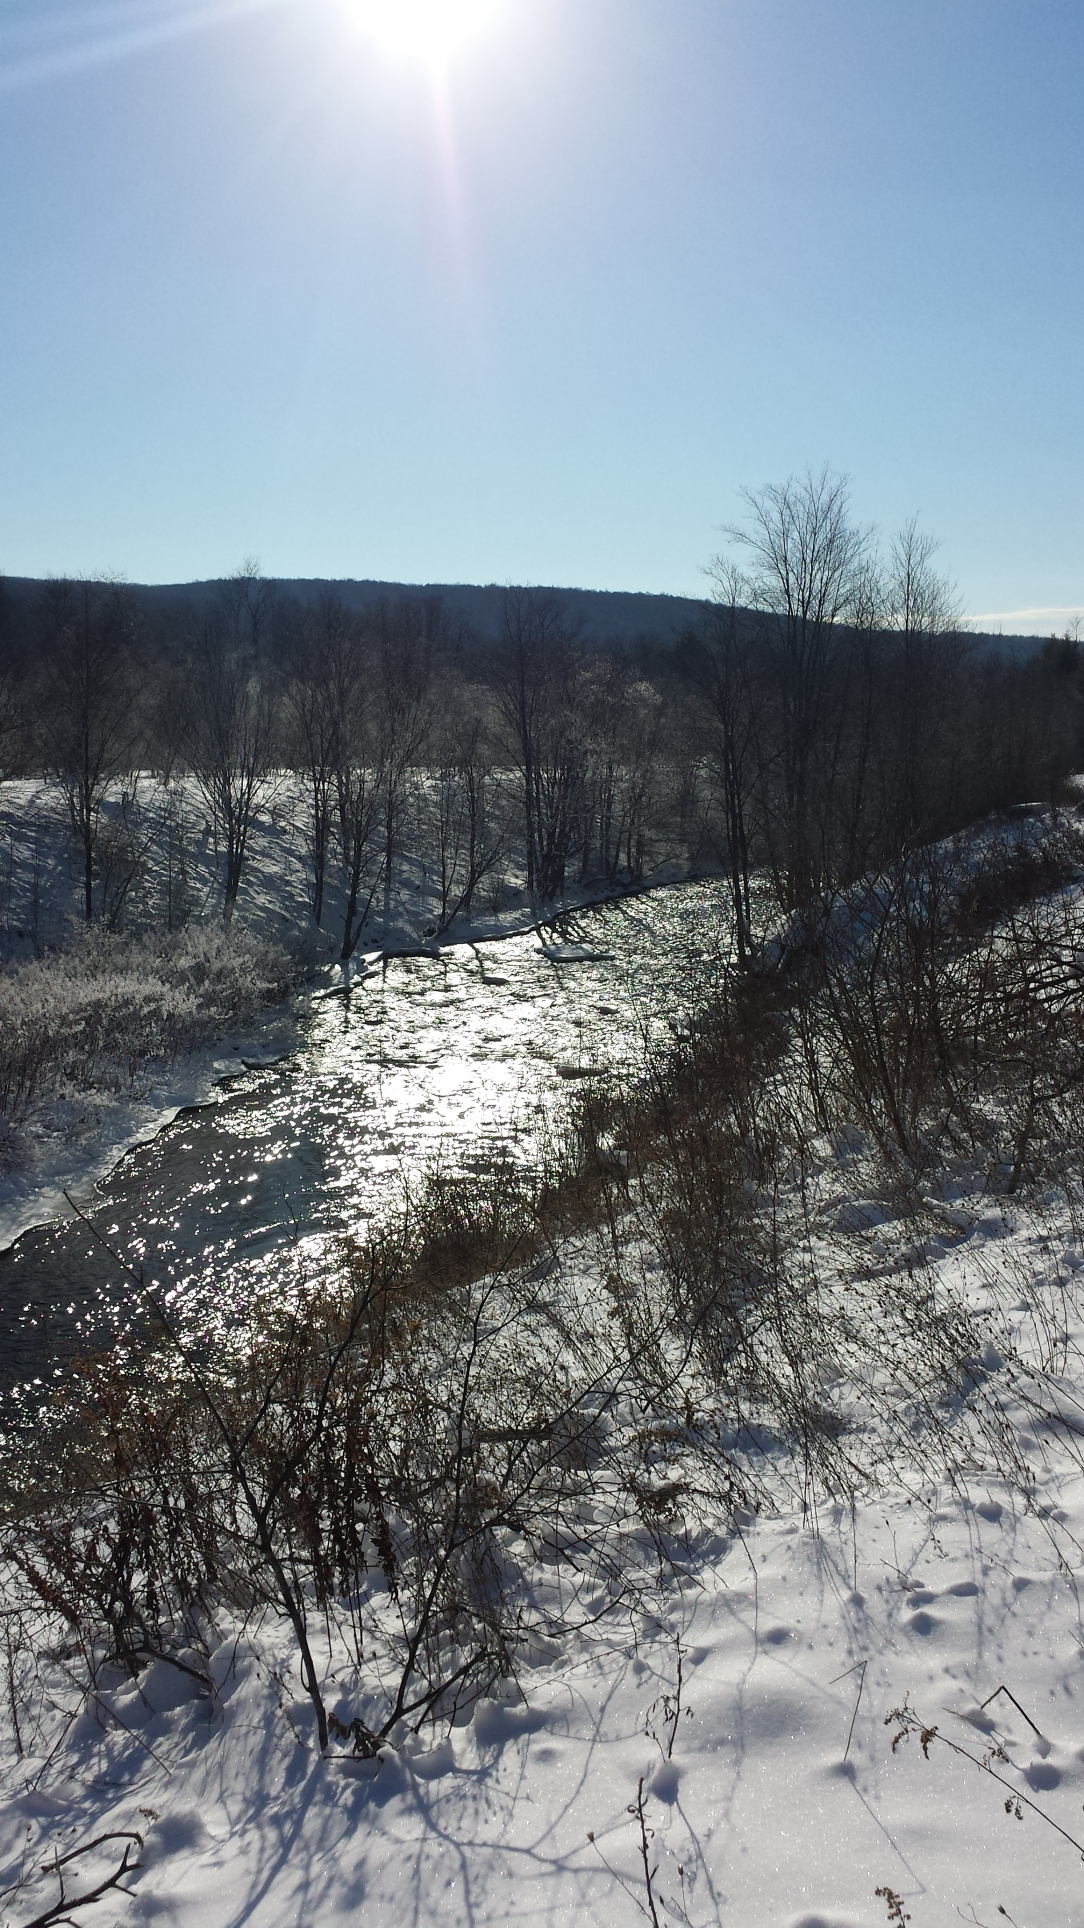 How pretty is that? A shot of the Lackawanna River I took on my solo Sunday morning ski.